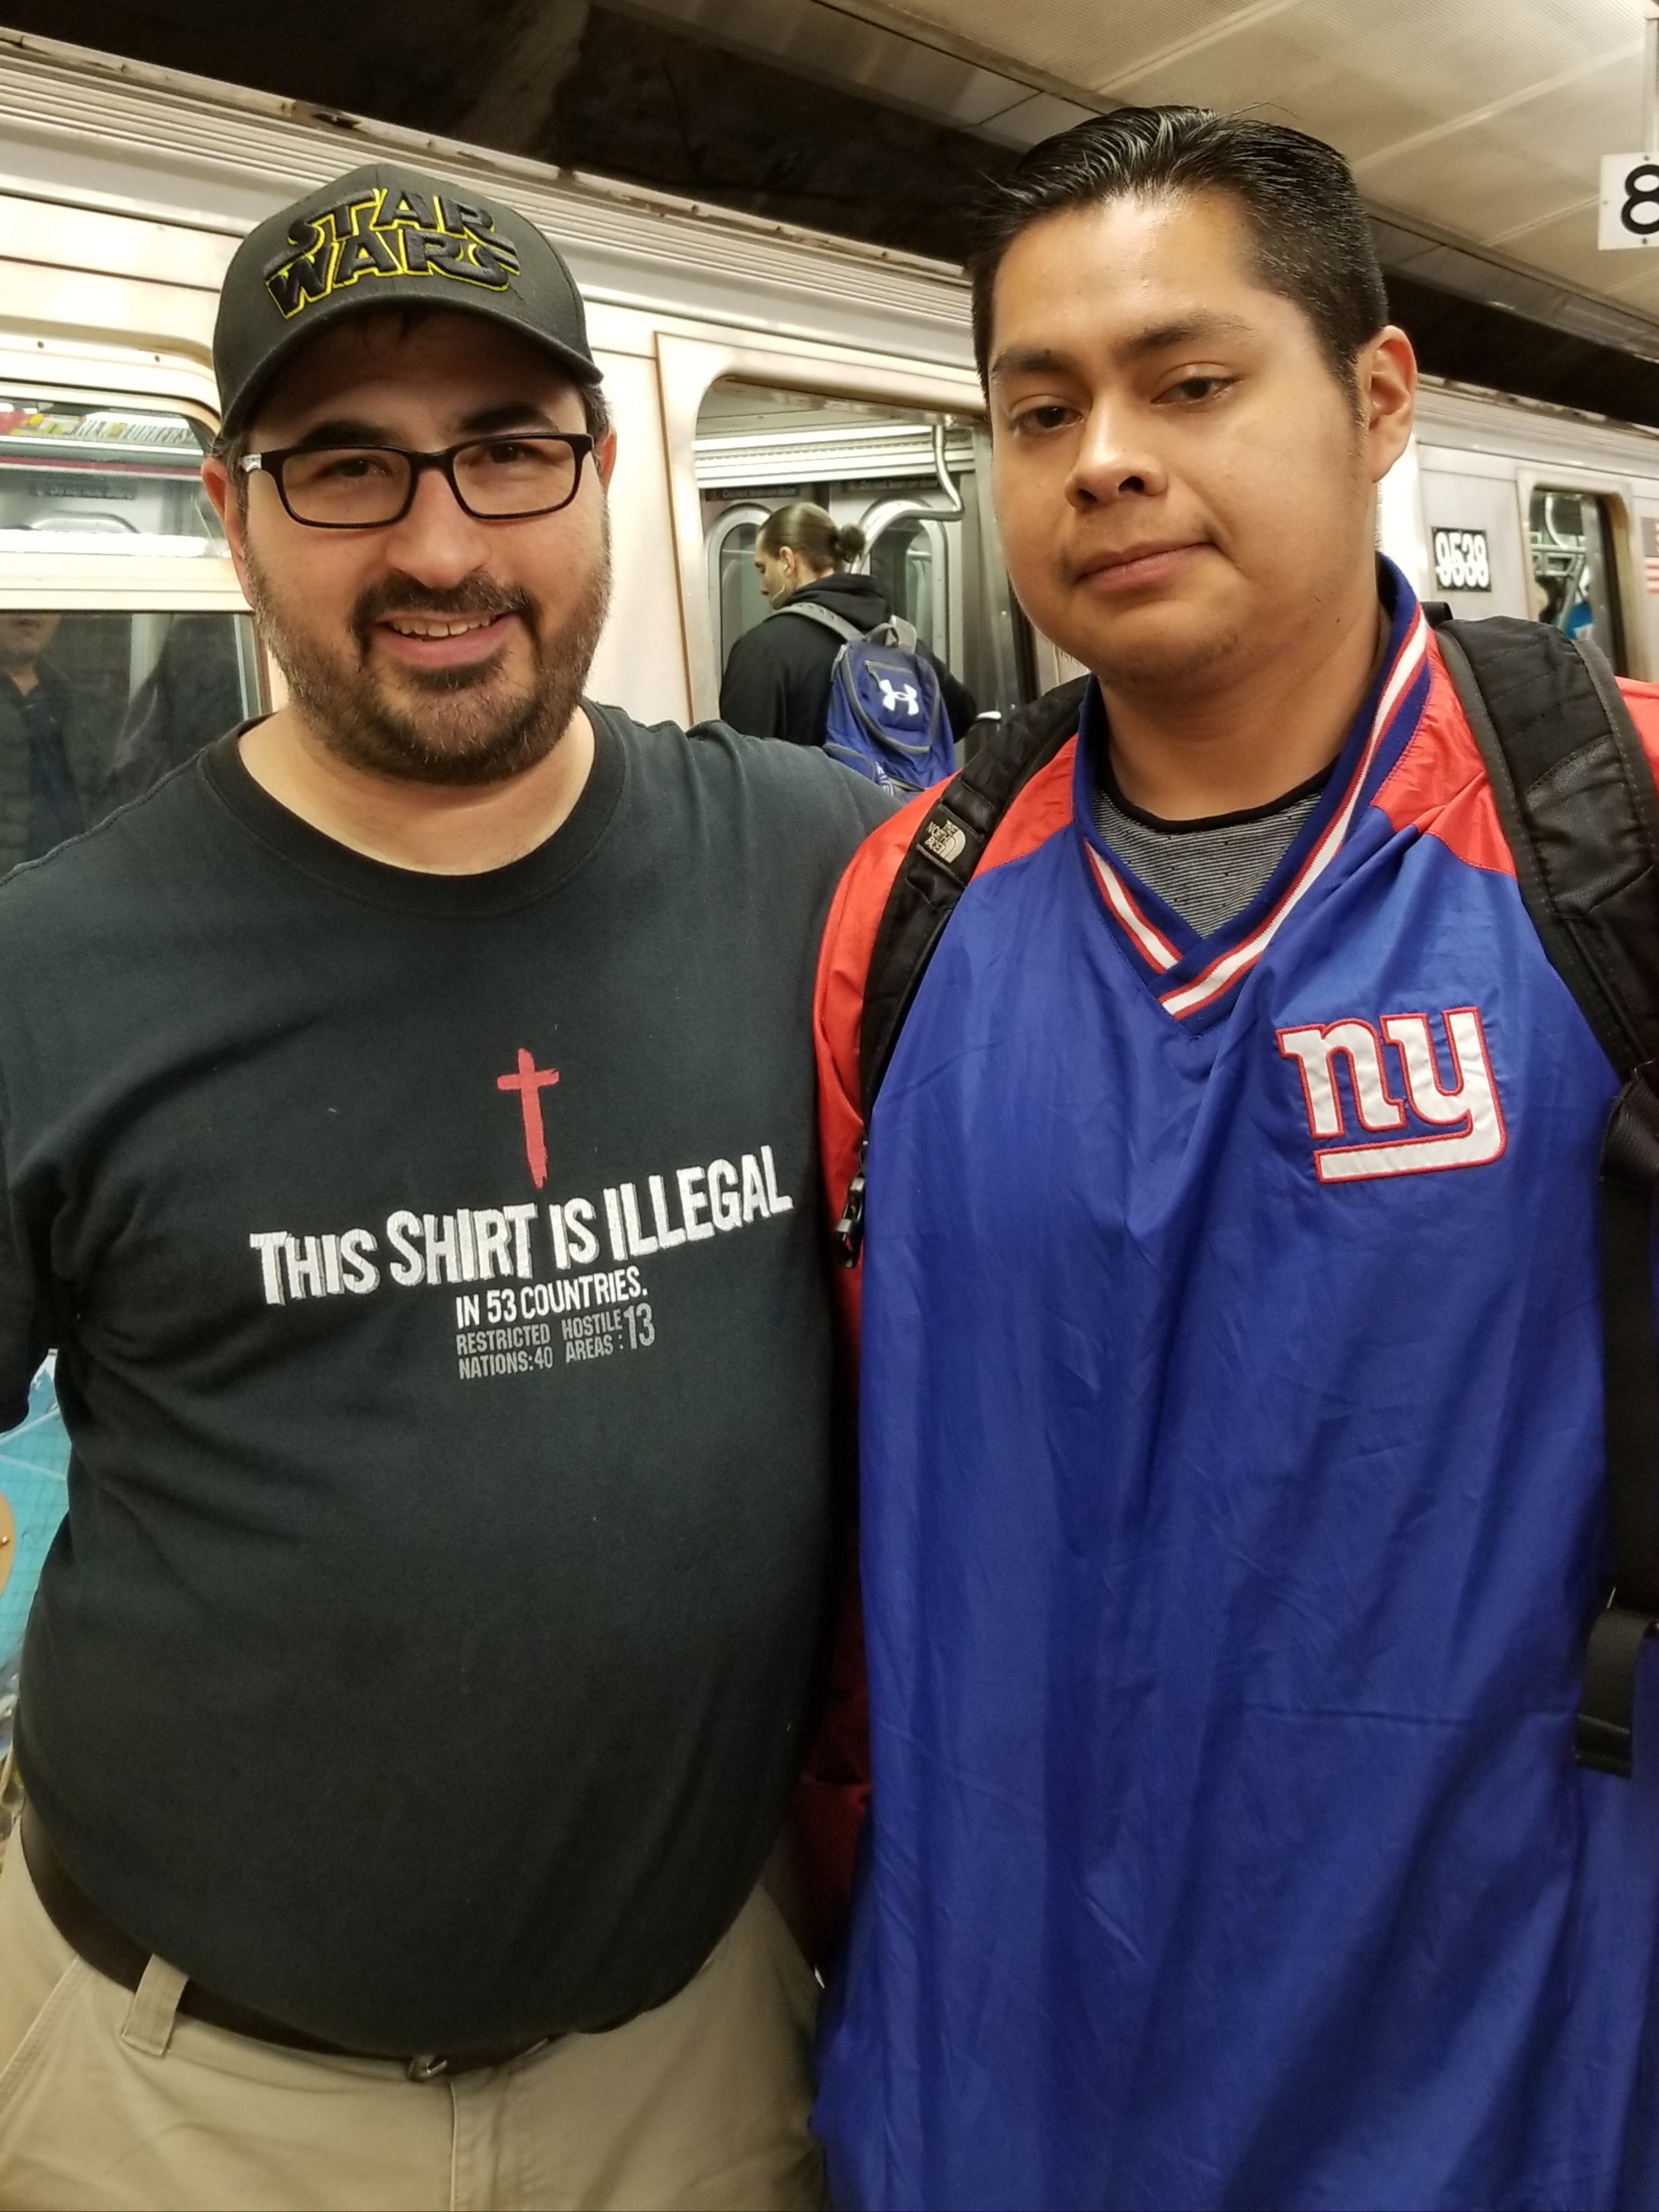 This is Ed, and he really appreciated my open-air message on the subway platform. He's a Christian and he encouraged me a ton. This photo demonstrates the power of God to bridge divides. You see, I'm the World's craziest New England Patriots fan, and Ed here is wearing a New York Giants jacket. Yuck! Yet in Christ we can be friends and brothers. (But I really can't stand the Giants - but I like Ed.)